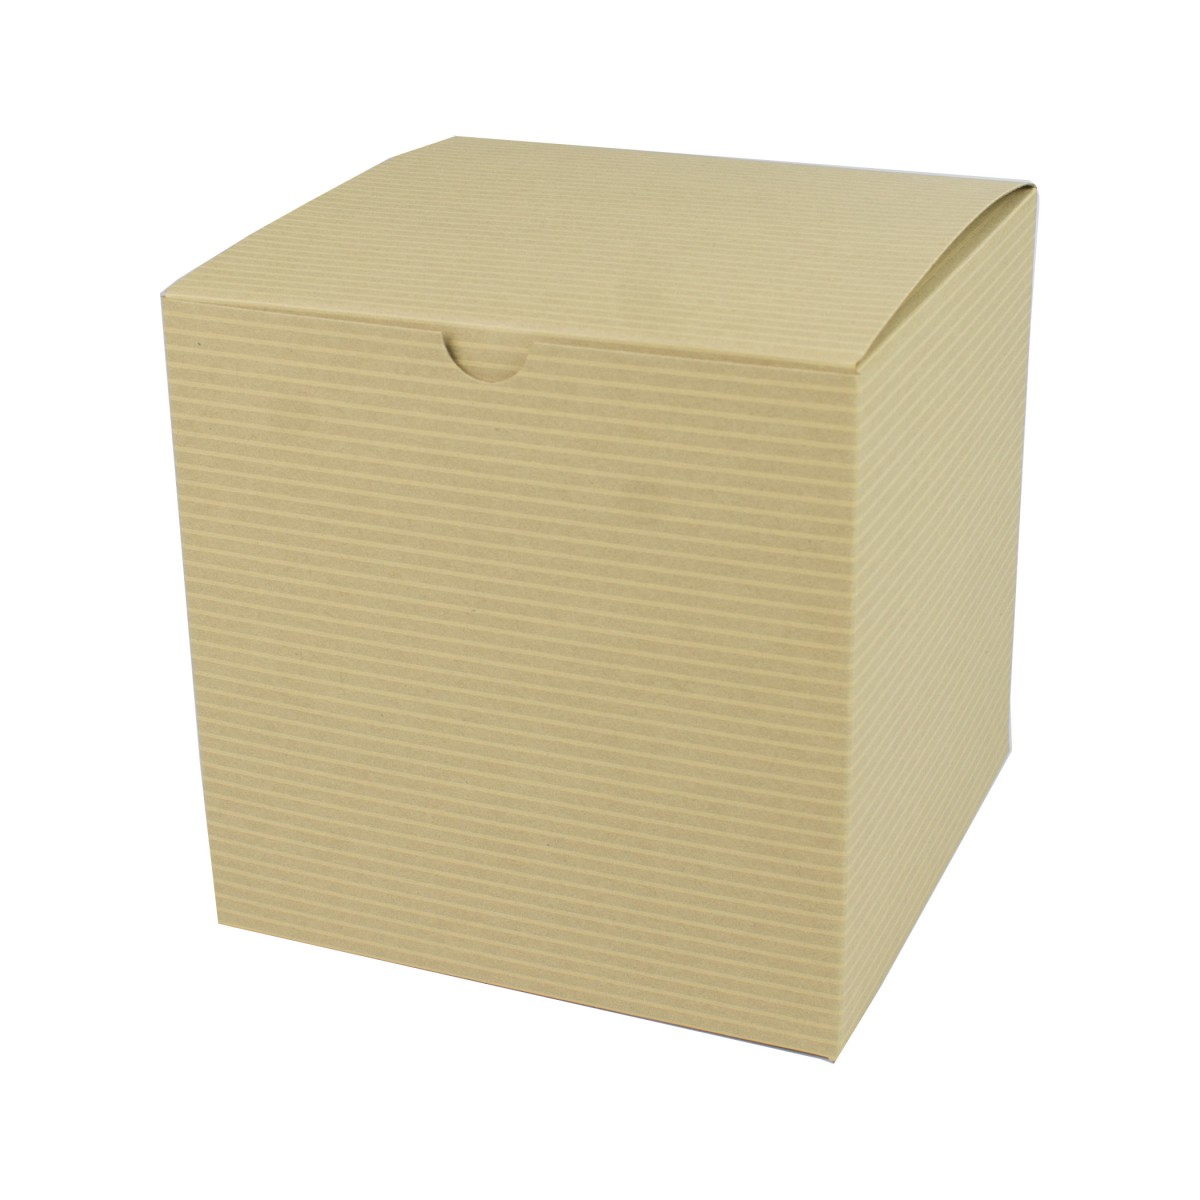 6 x 6 x 6 OATMEAL TINTED TUCK-TOP GIFT BOXES